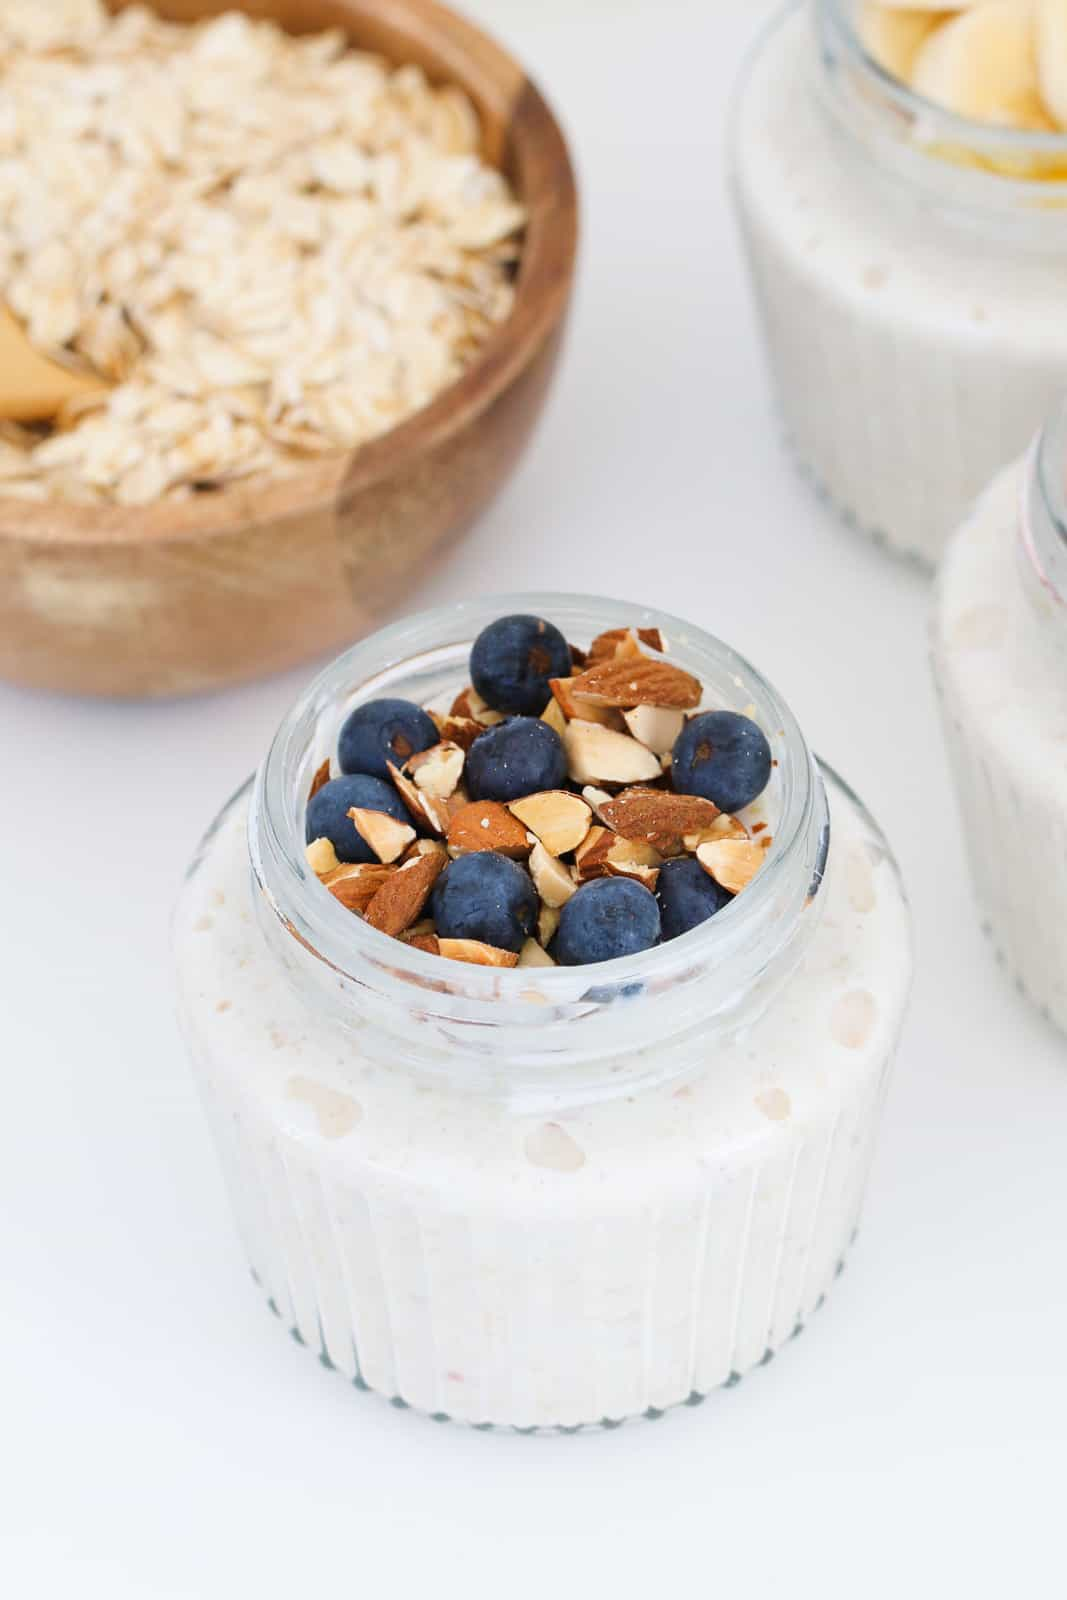 Blueberries and chopped almonds on top of a small glass jar of bircher muesli.